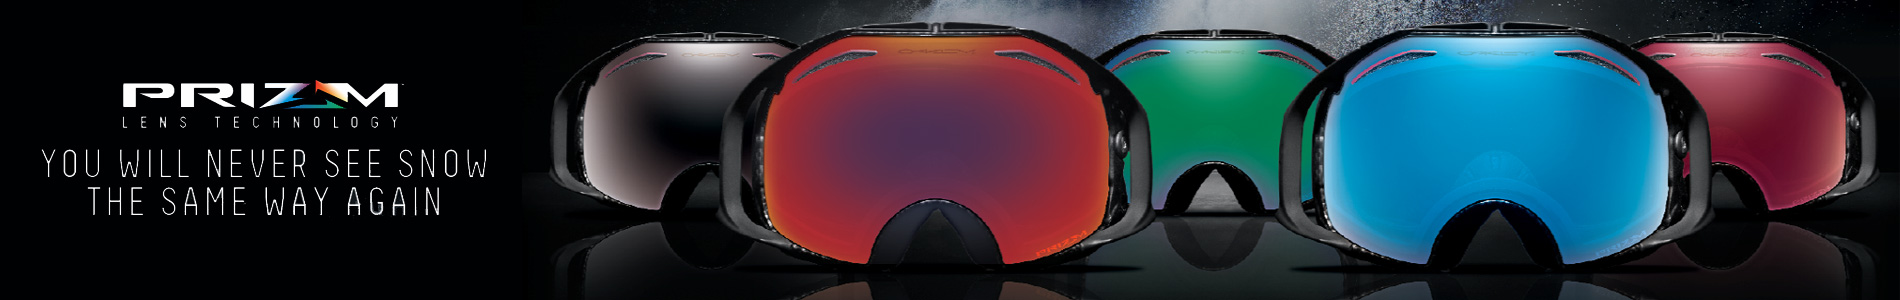 ski goggles oakley sale ca64  Grid view